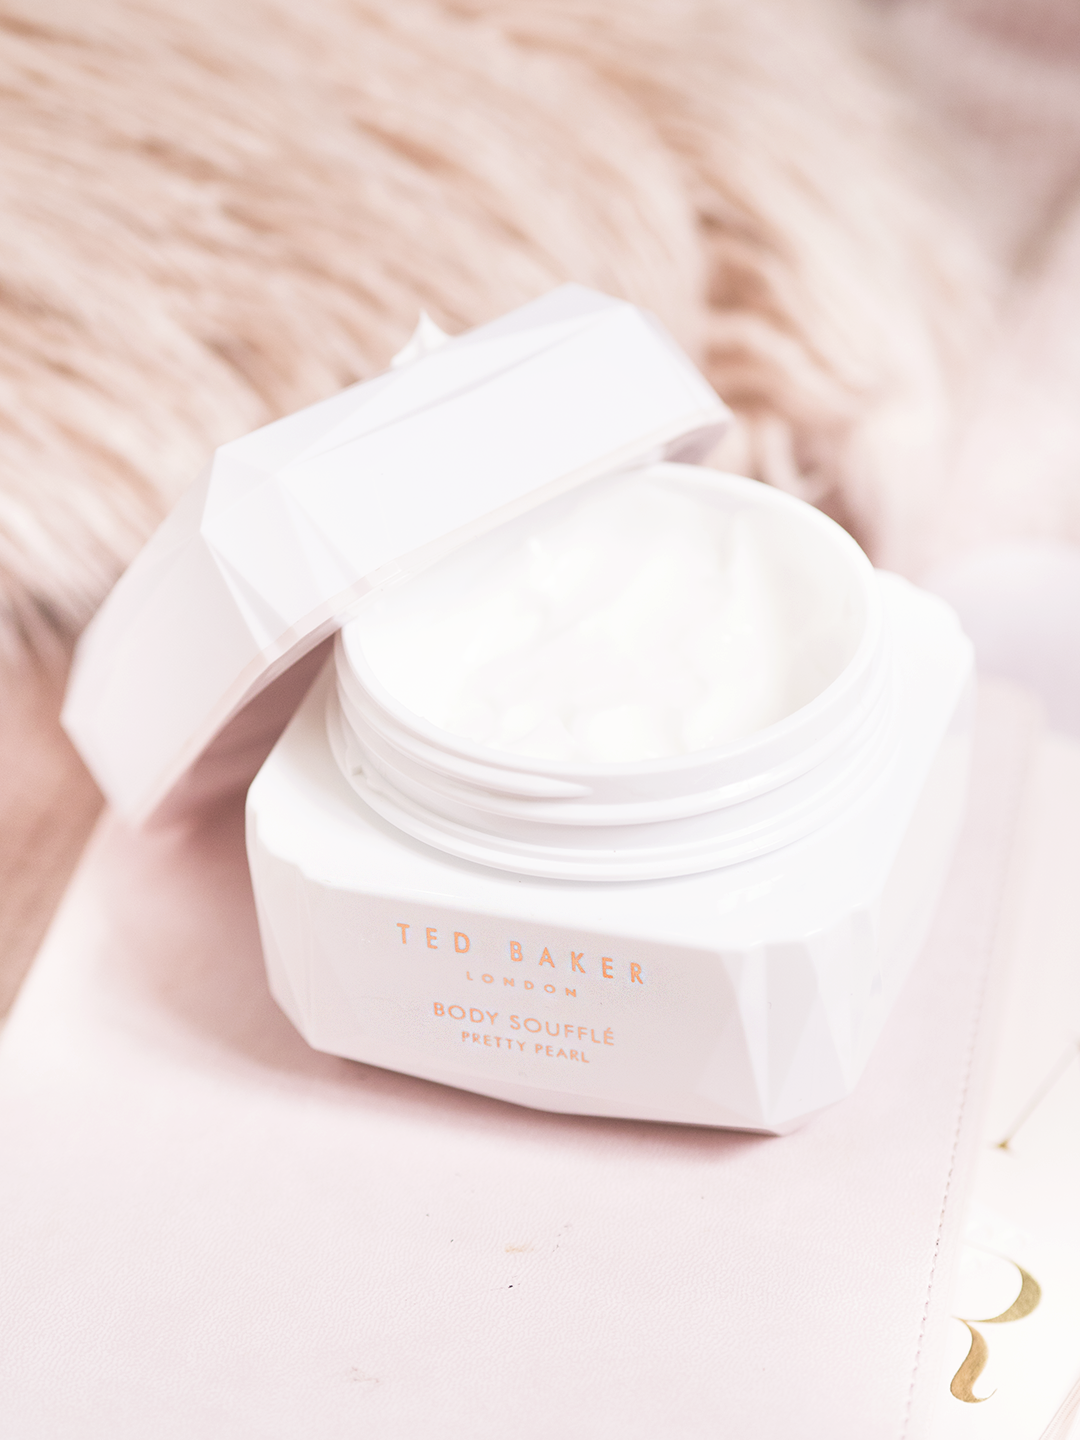 Ted Baker Pretty Pearl Body Soufflé